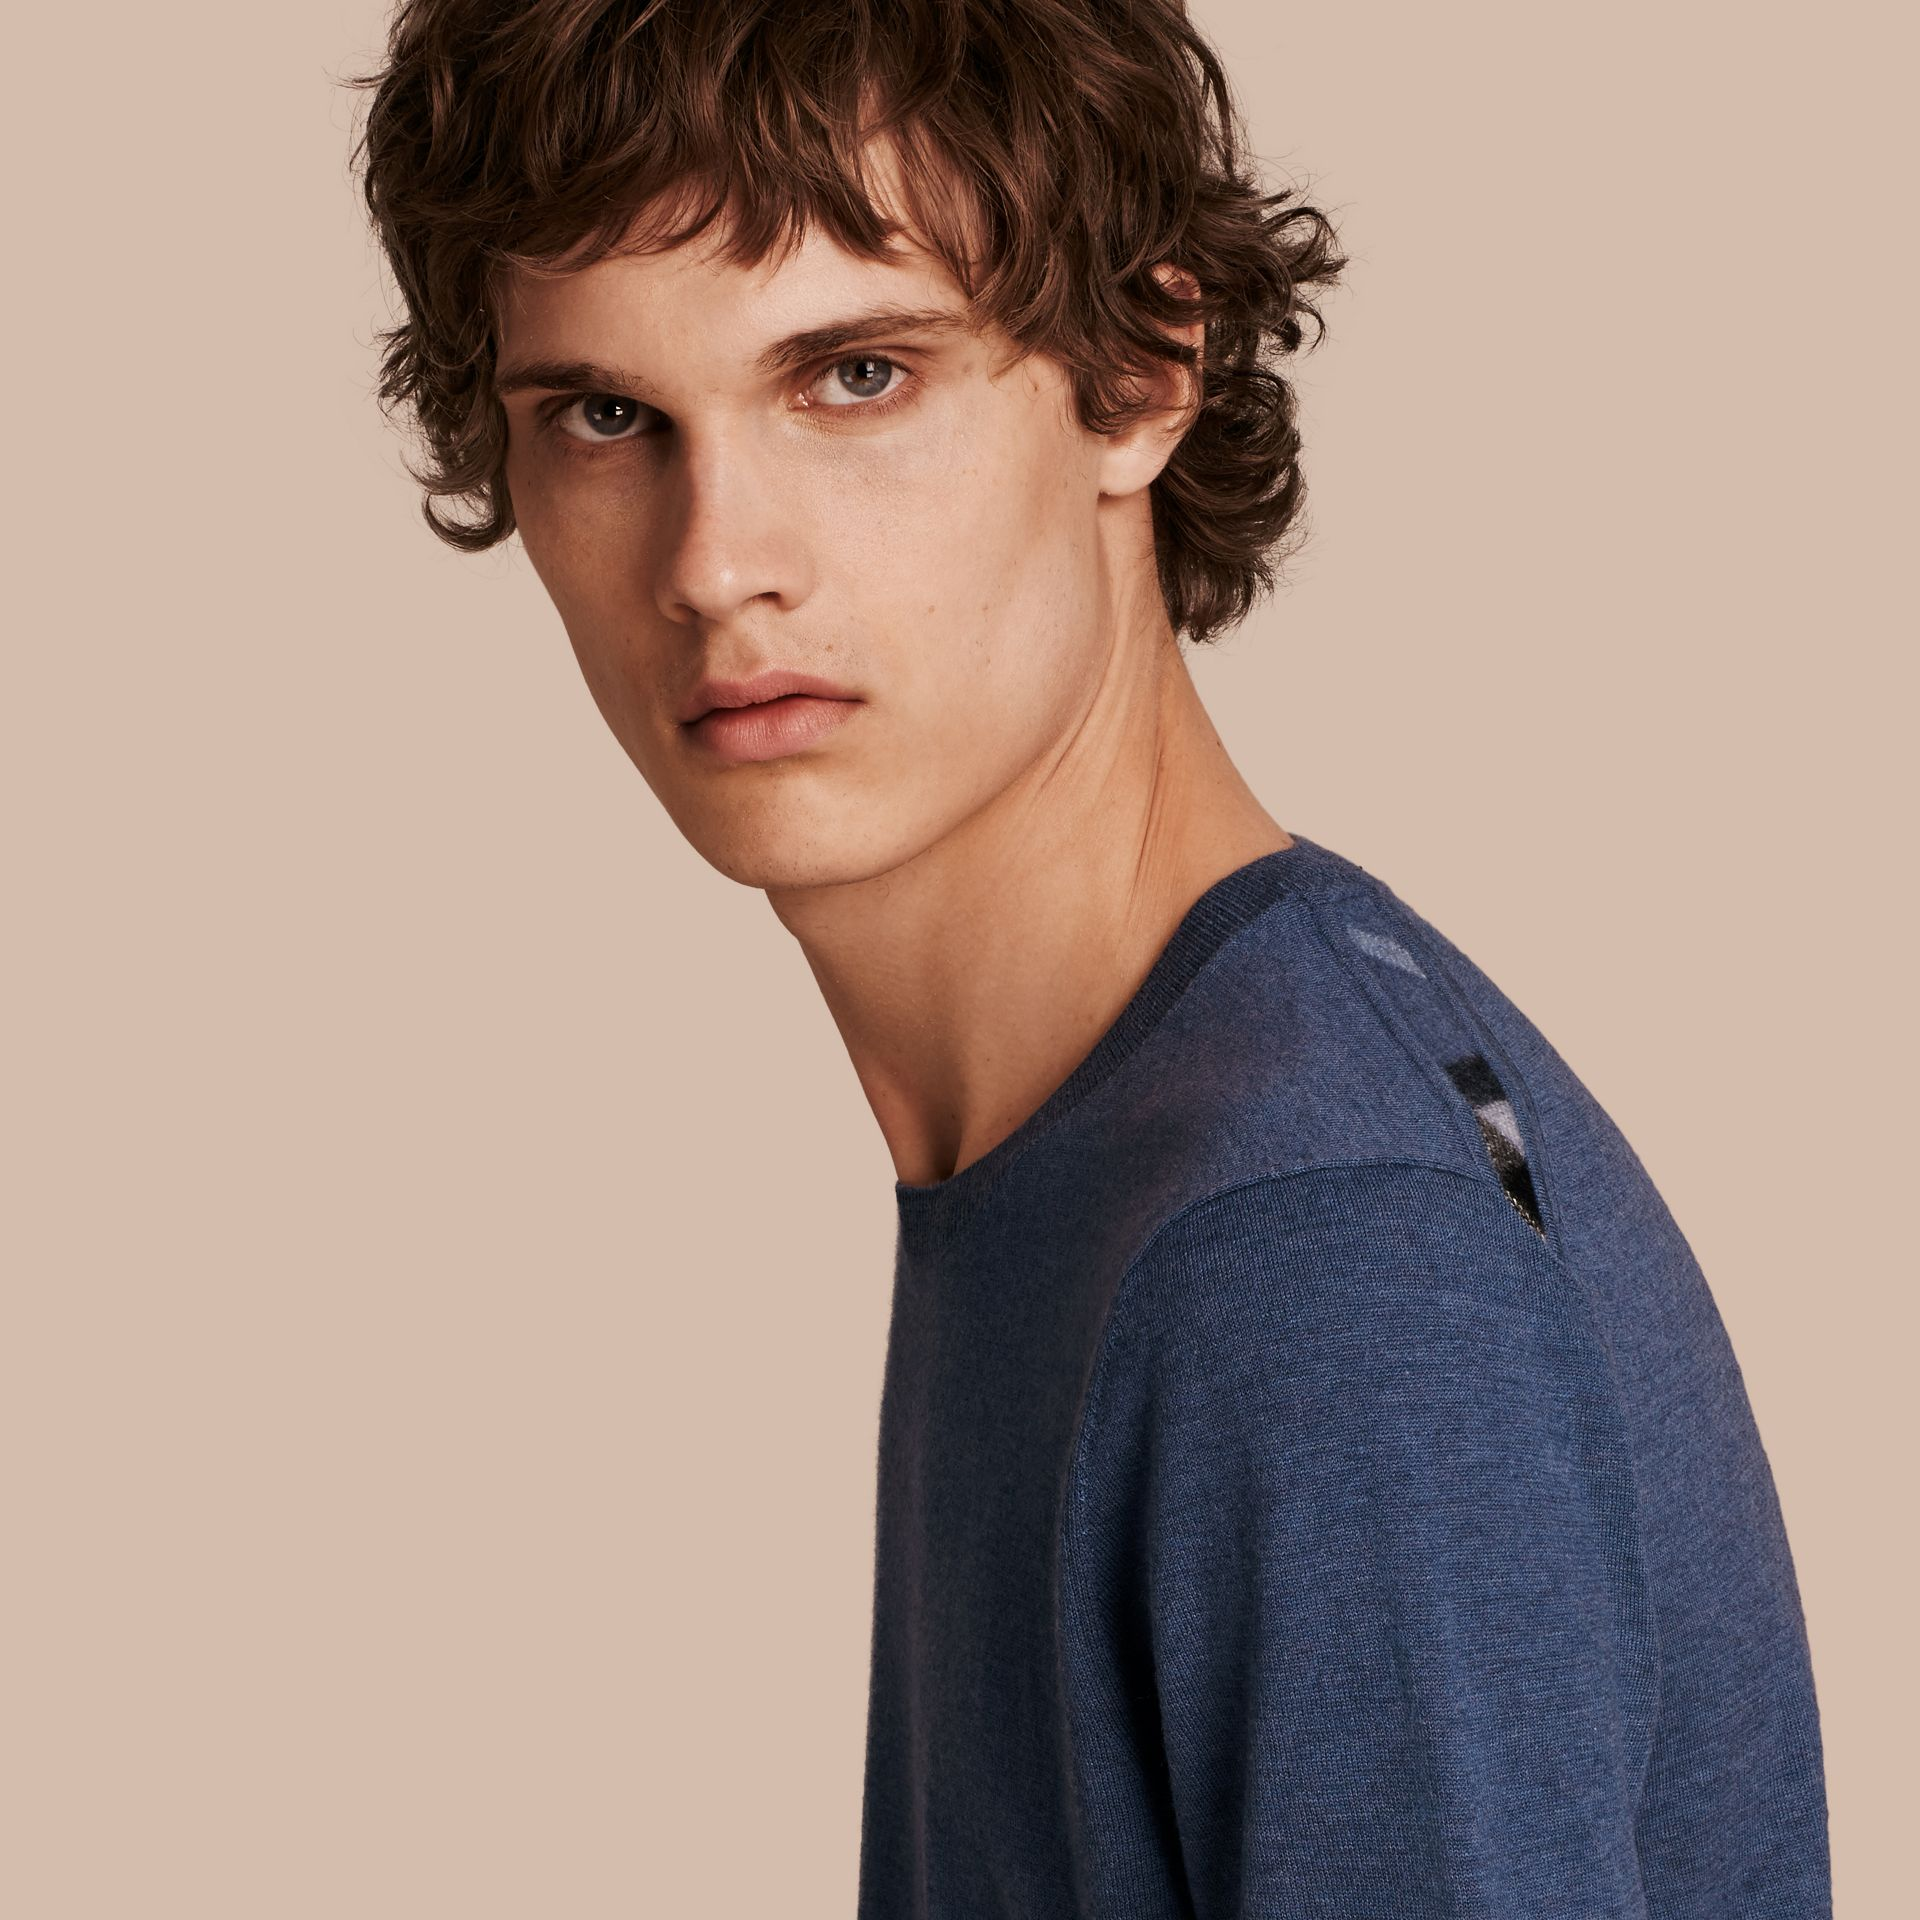 Check Jacquard Detail Cashmere Sweater in Dusty Blue - Men | Burberry Canada - gallery image 1